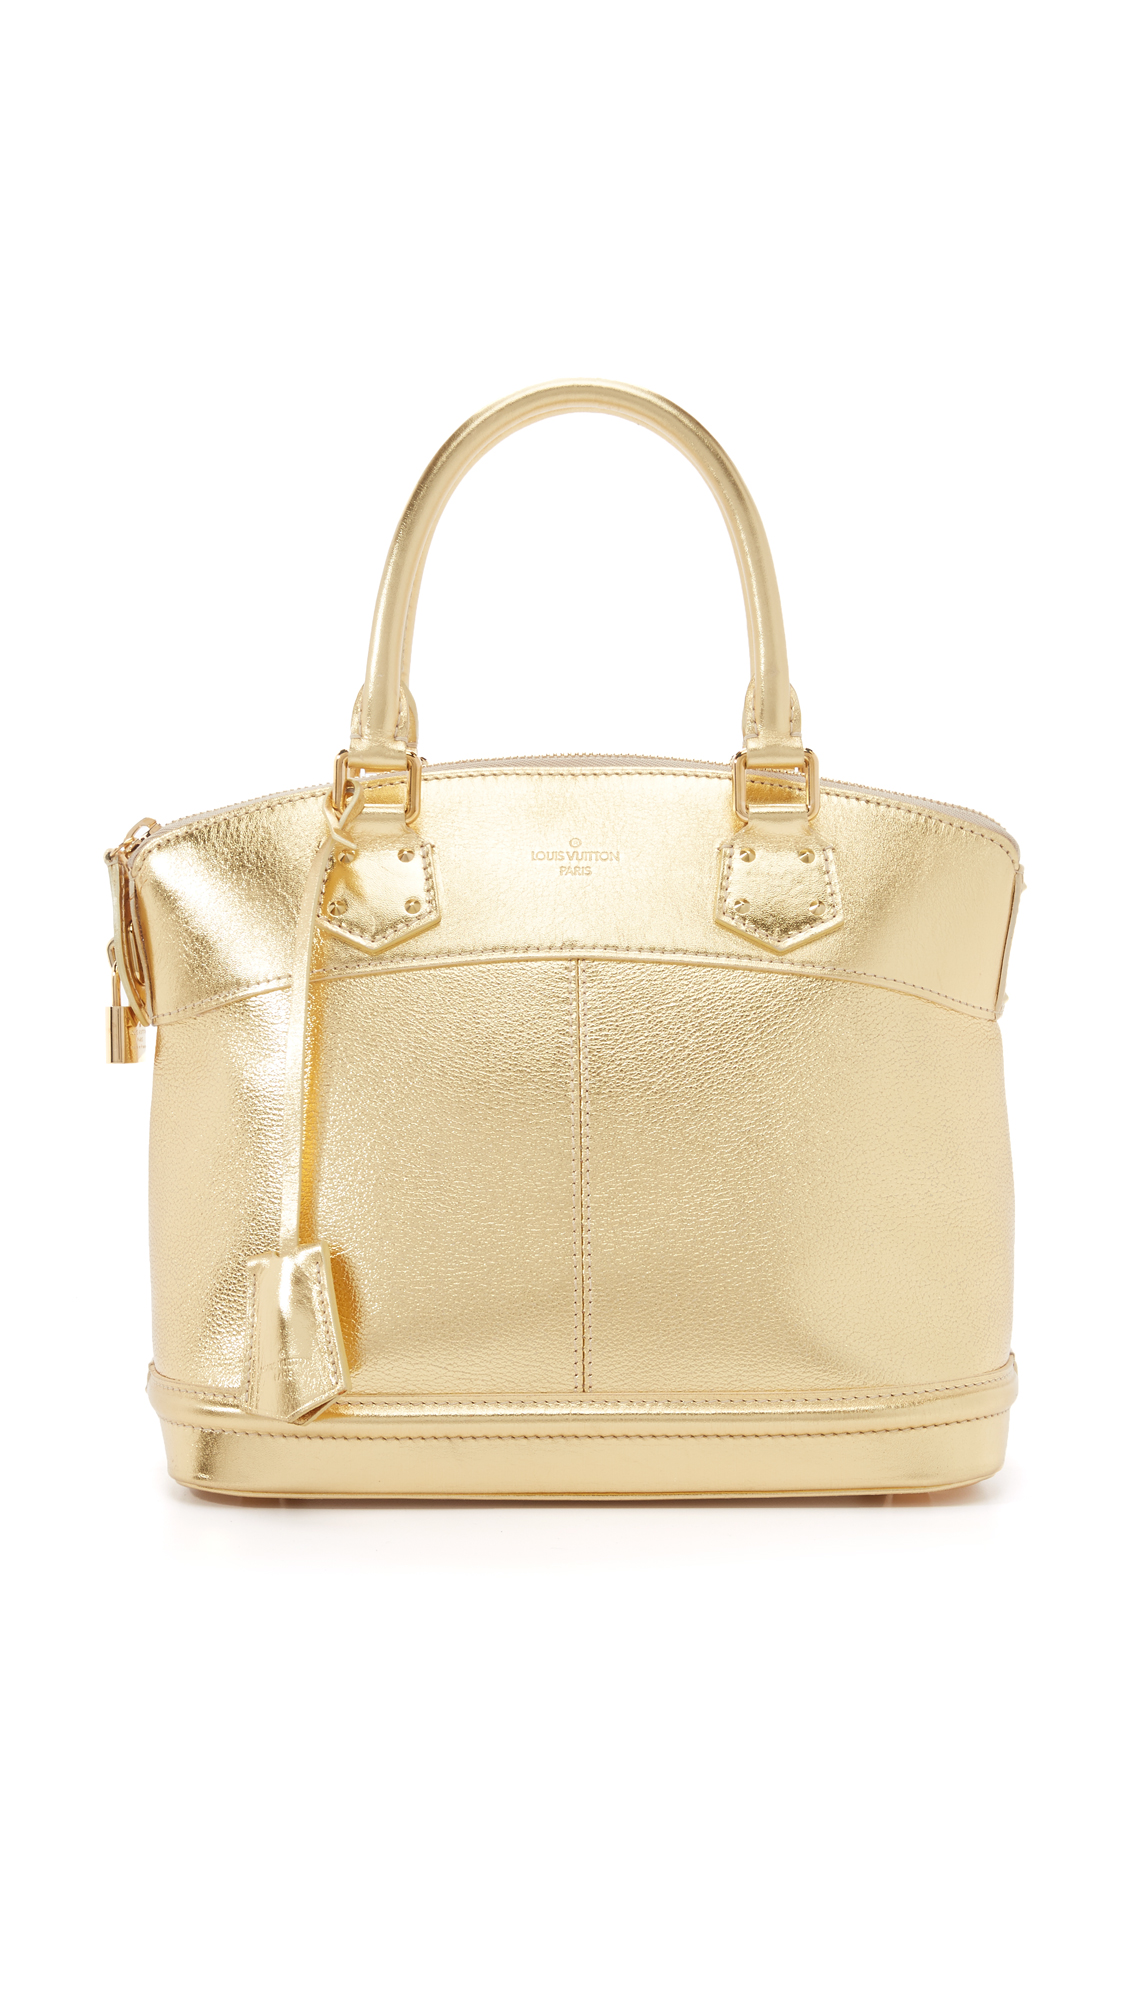 what goes around comes around female what goes around comes around louis vuitton lockit bag previously owned gold